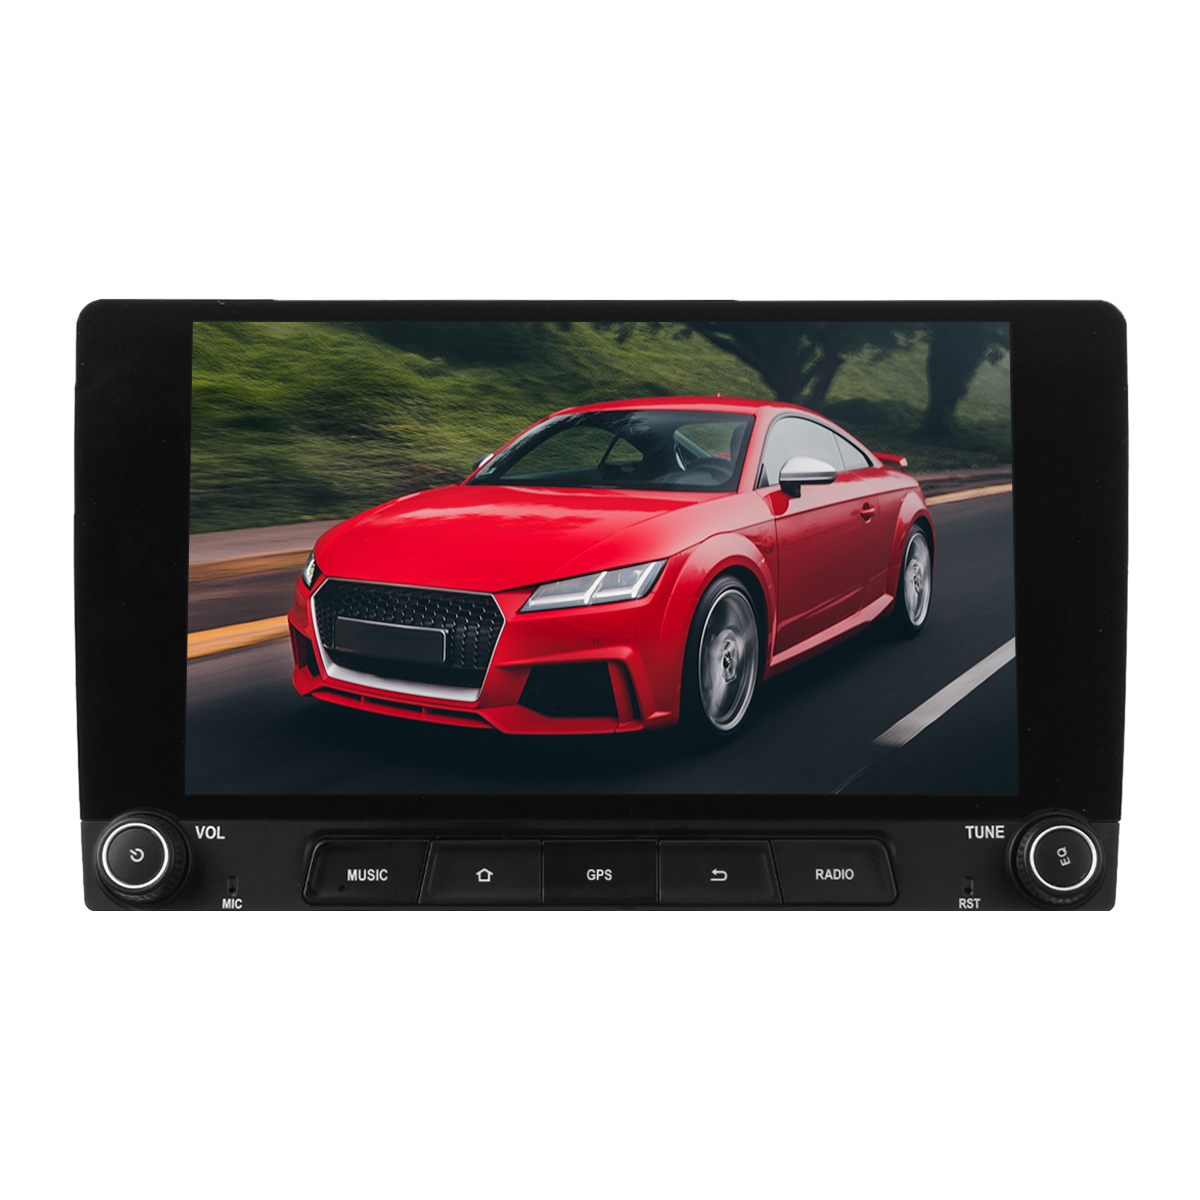 10.1 Inch 2DIN for Android 8.1 Car Stereo Radio MP5 Player Quad